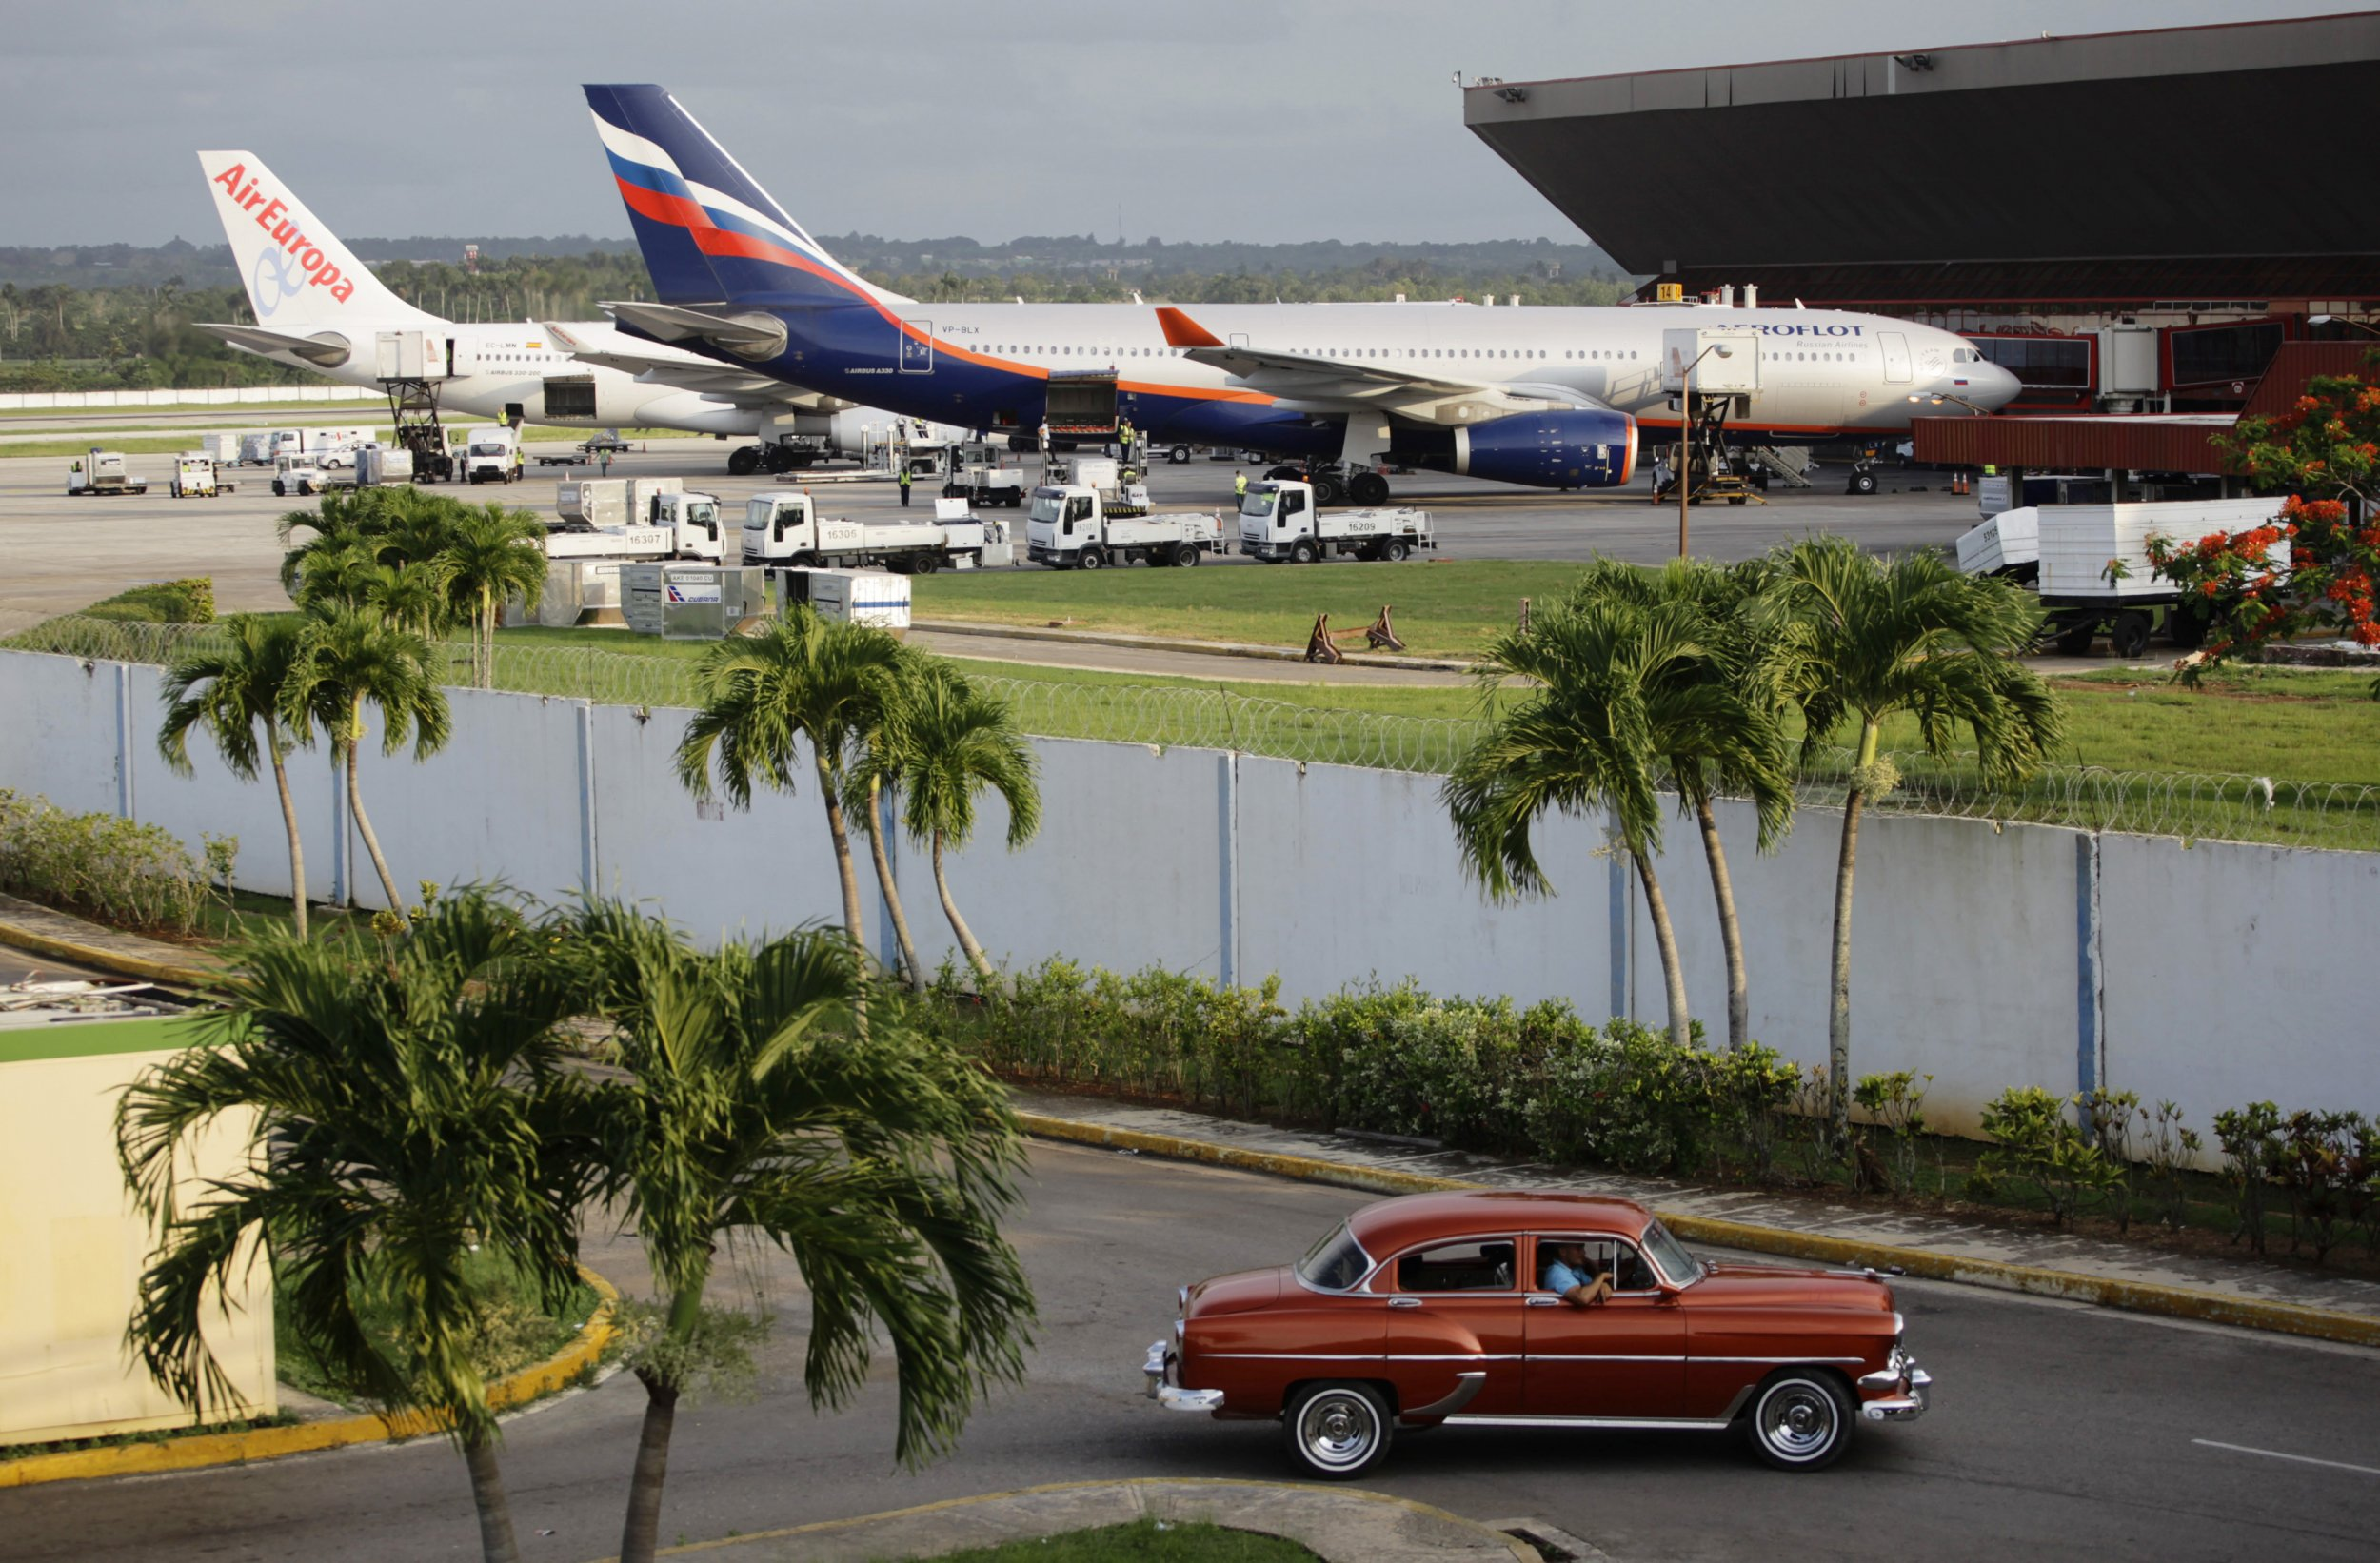 New On Charter Flight Roller Coaster Eased Cuba Restrictions